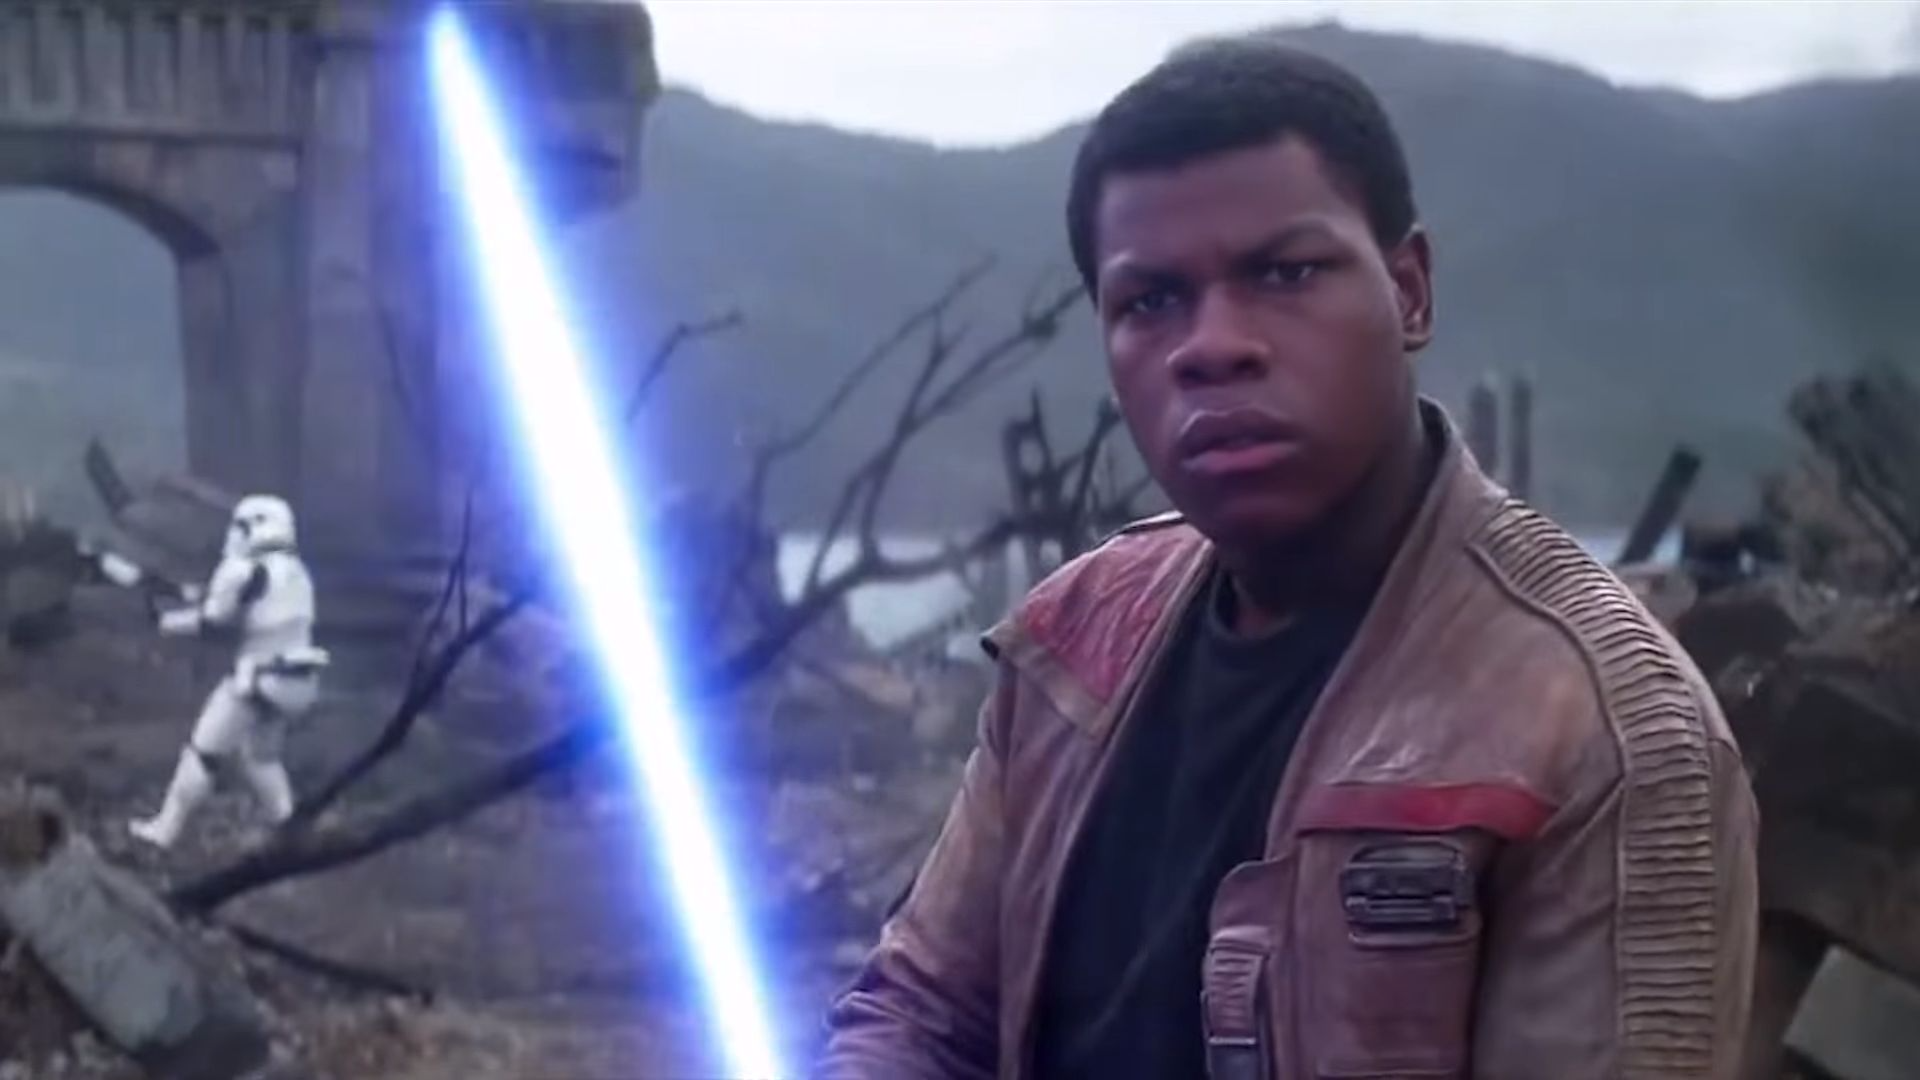 John Boyega Is Pretty Sure Finn Isn't Force Sensitive, But He's Not Disappointed